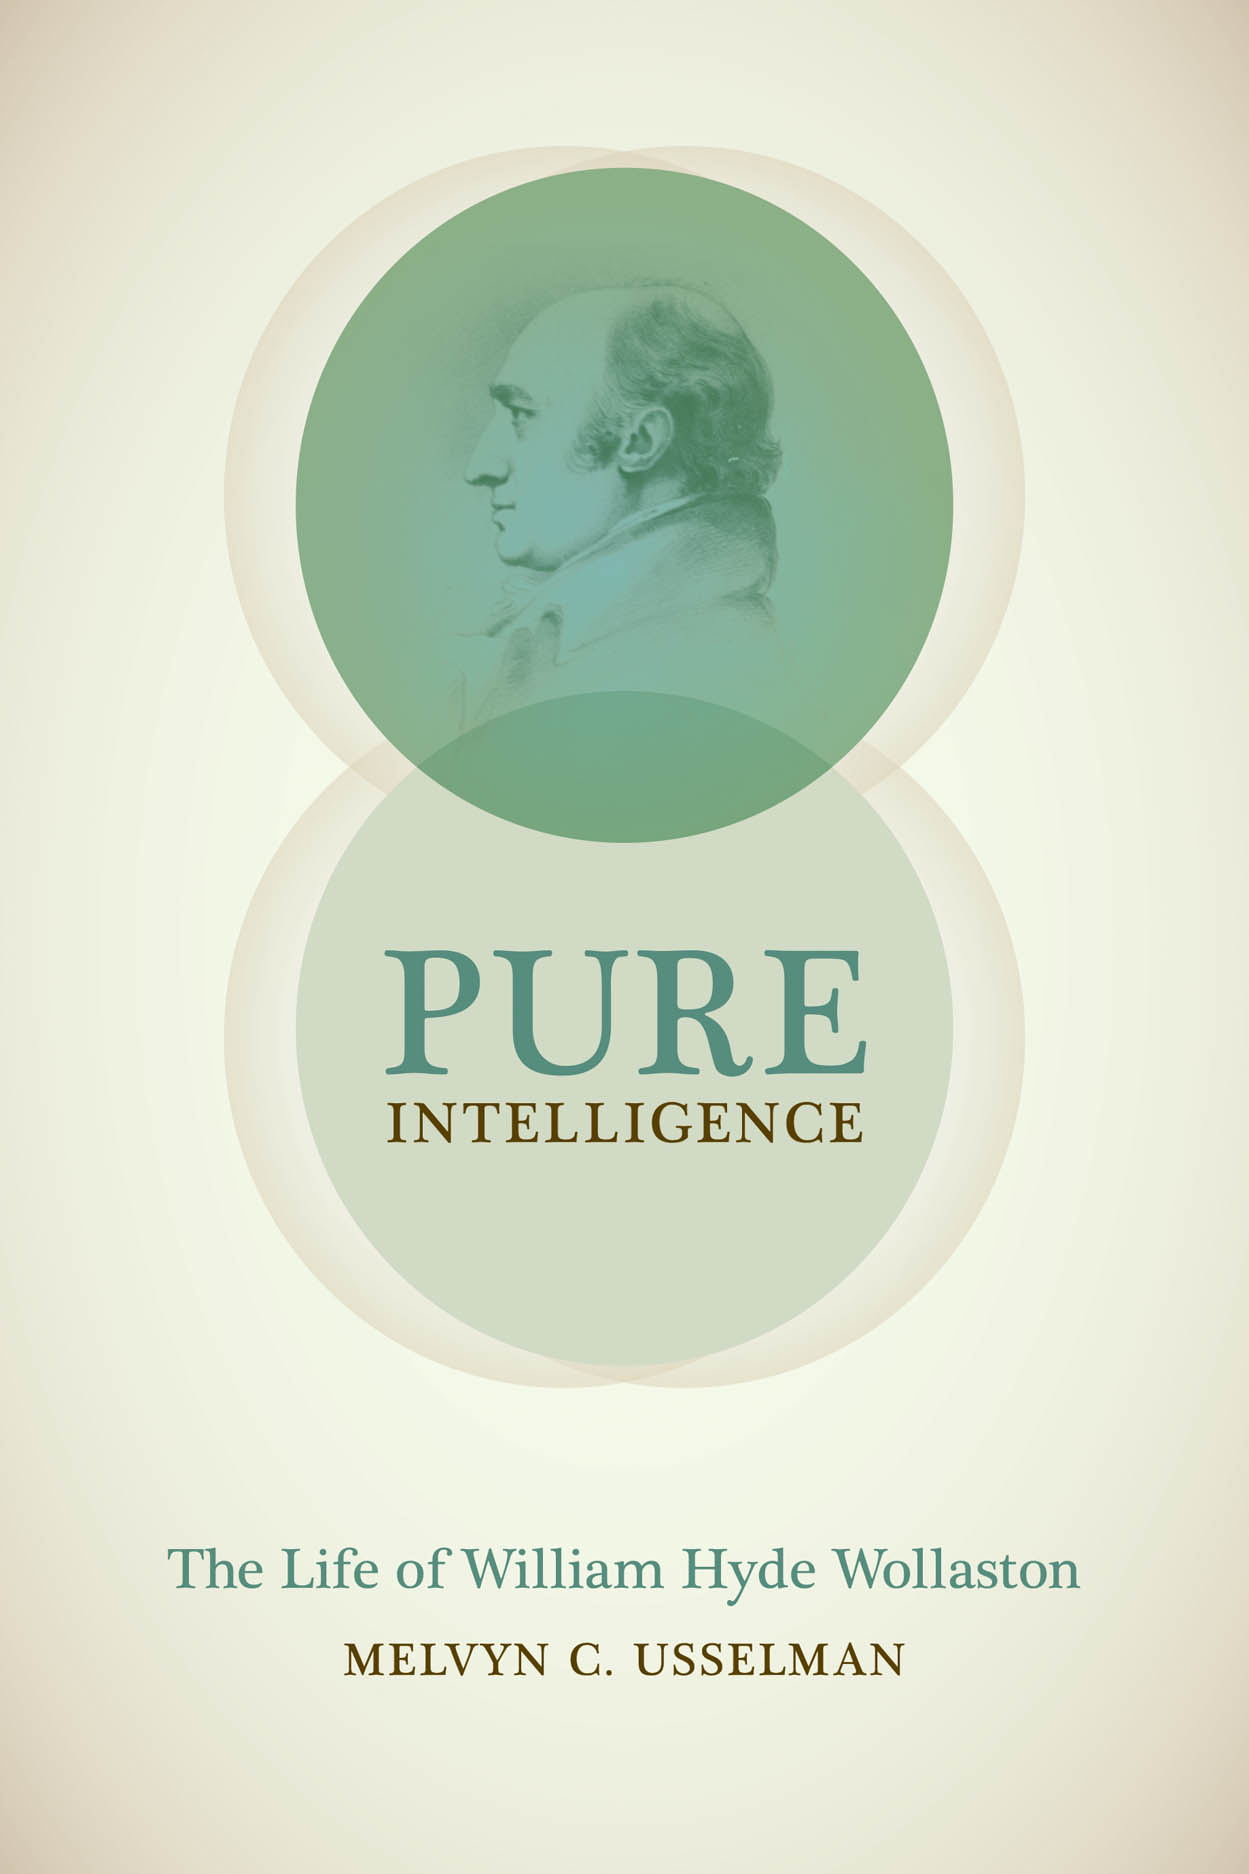 Pure Intelligence: The Life of William Hyde Wollaston